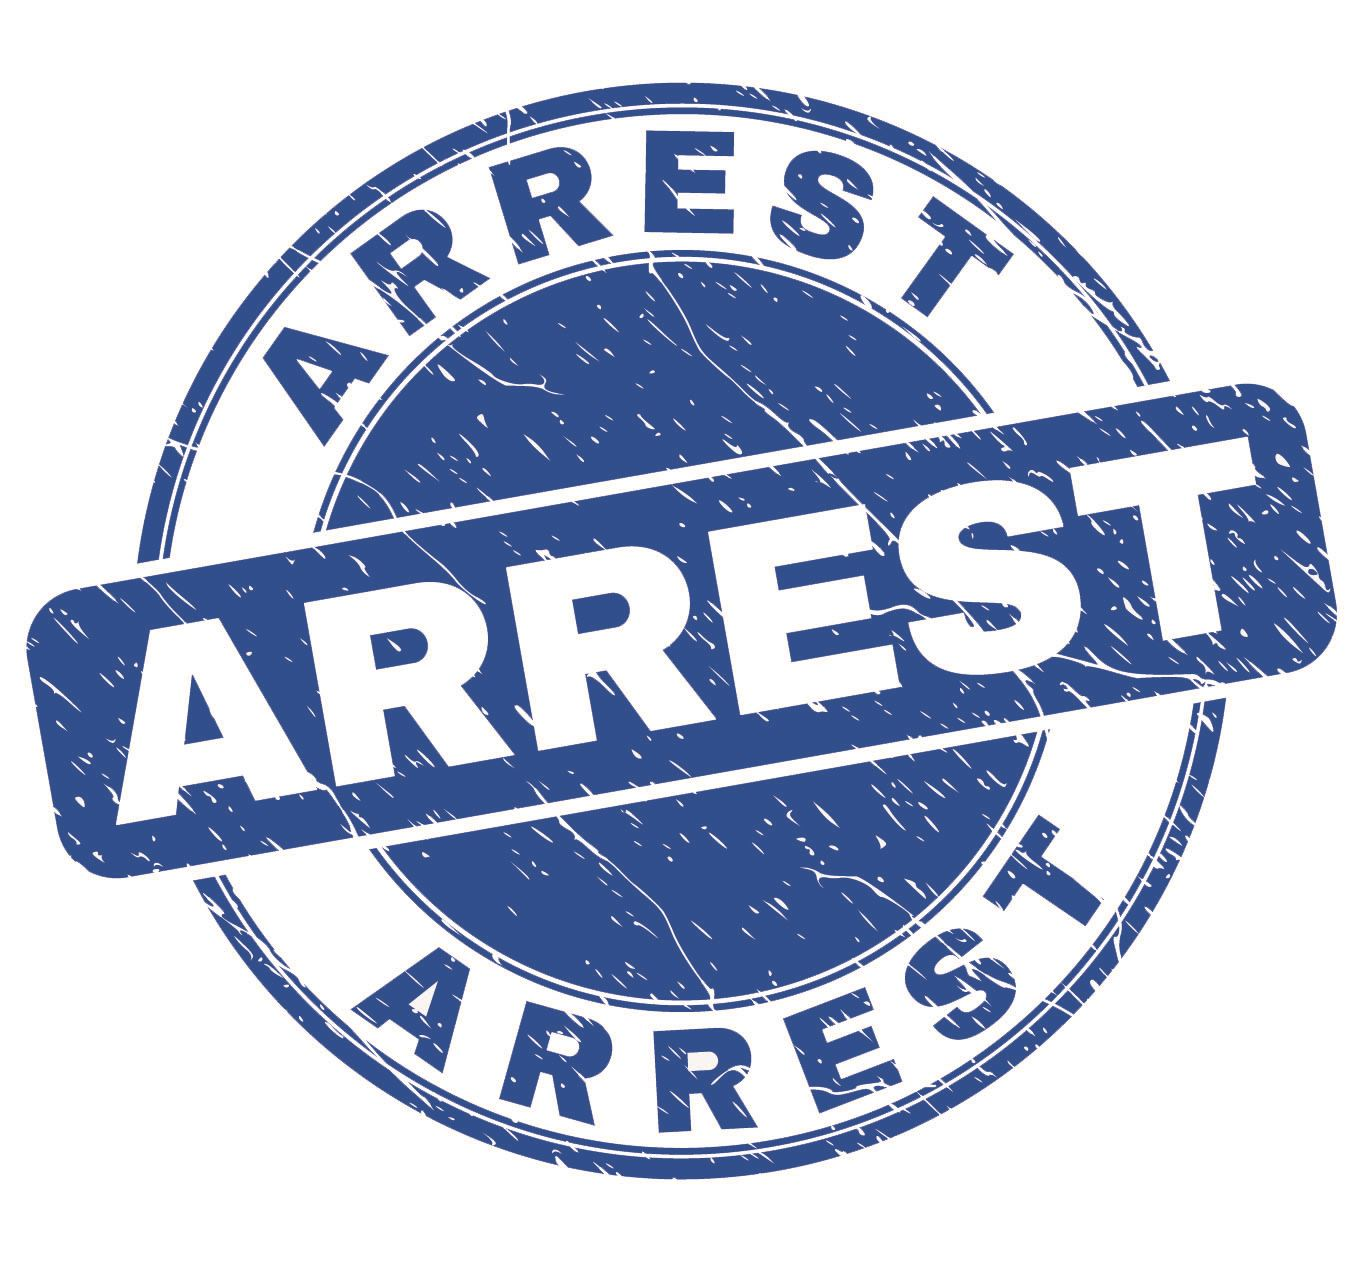 Arrest in big block letters. The color is blue